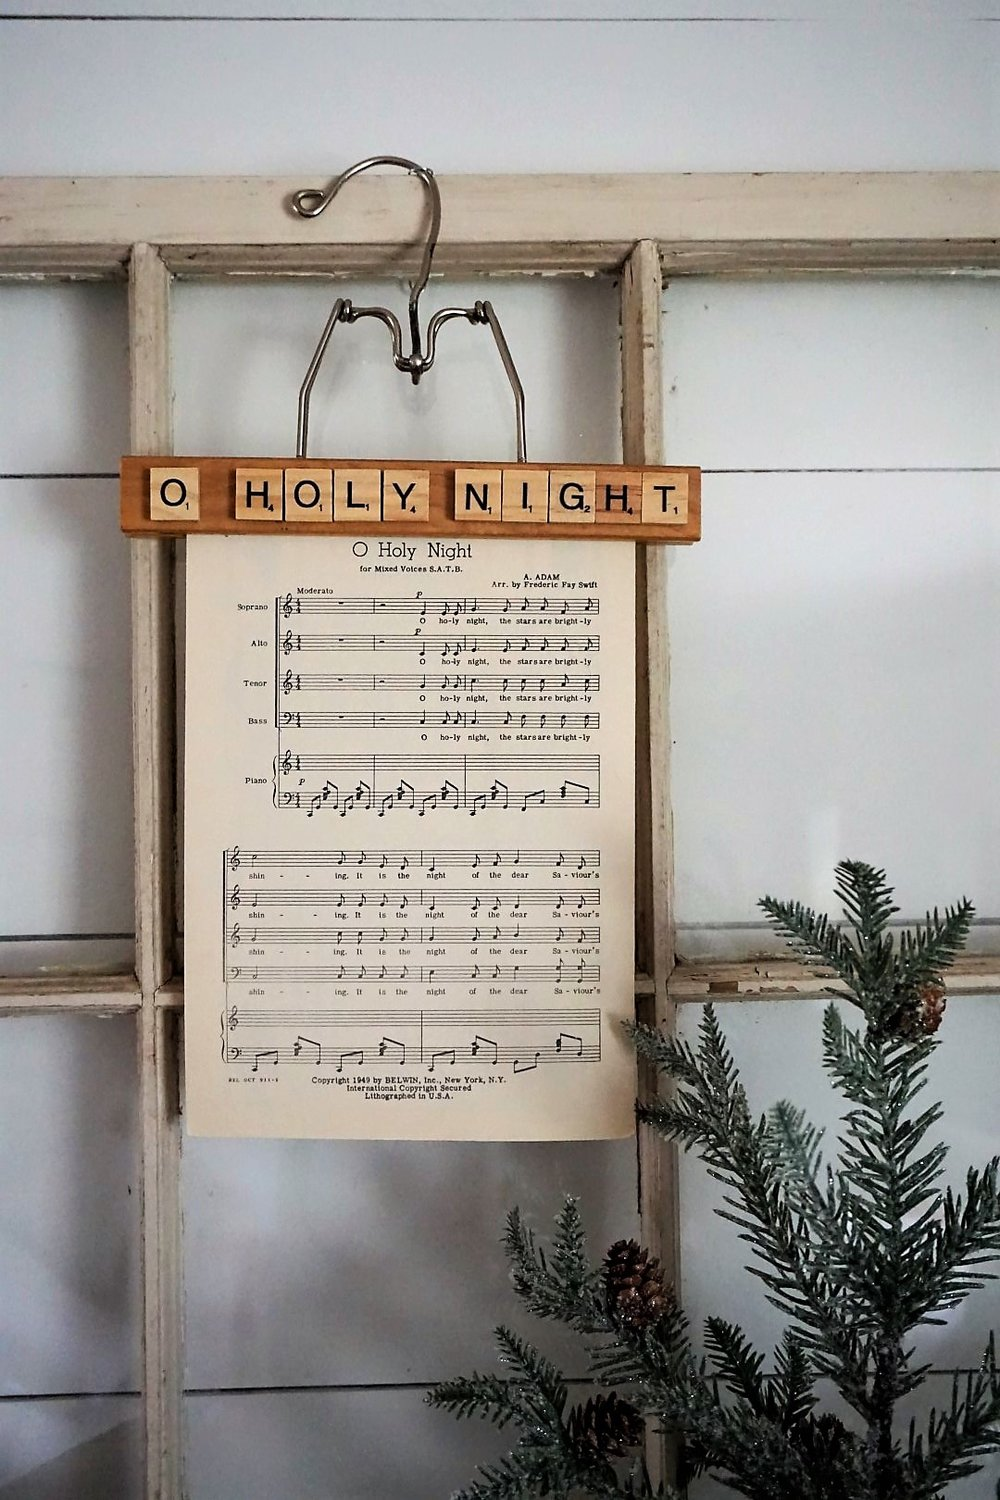 Use vintage sheet music and an old wooden hanger to create stylist Christmas decor. Click here for the tutorial and supply list! #christmasdiy #christmascrafts #sheetmusic #christmasdecorations #christmasdecor #diychristmasdecor